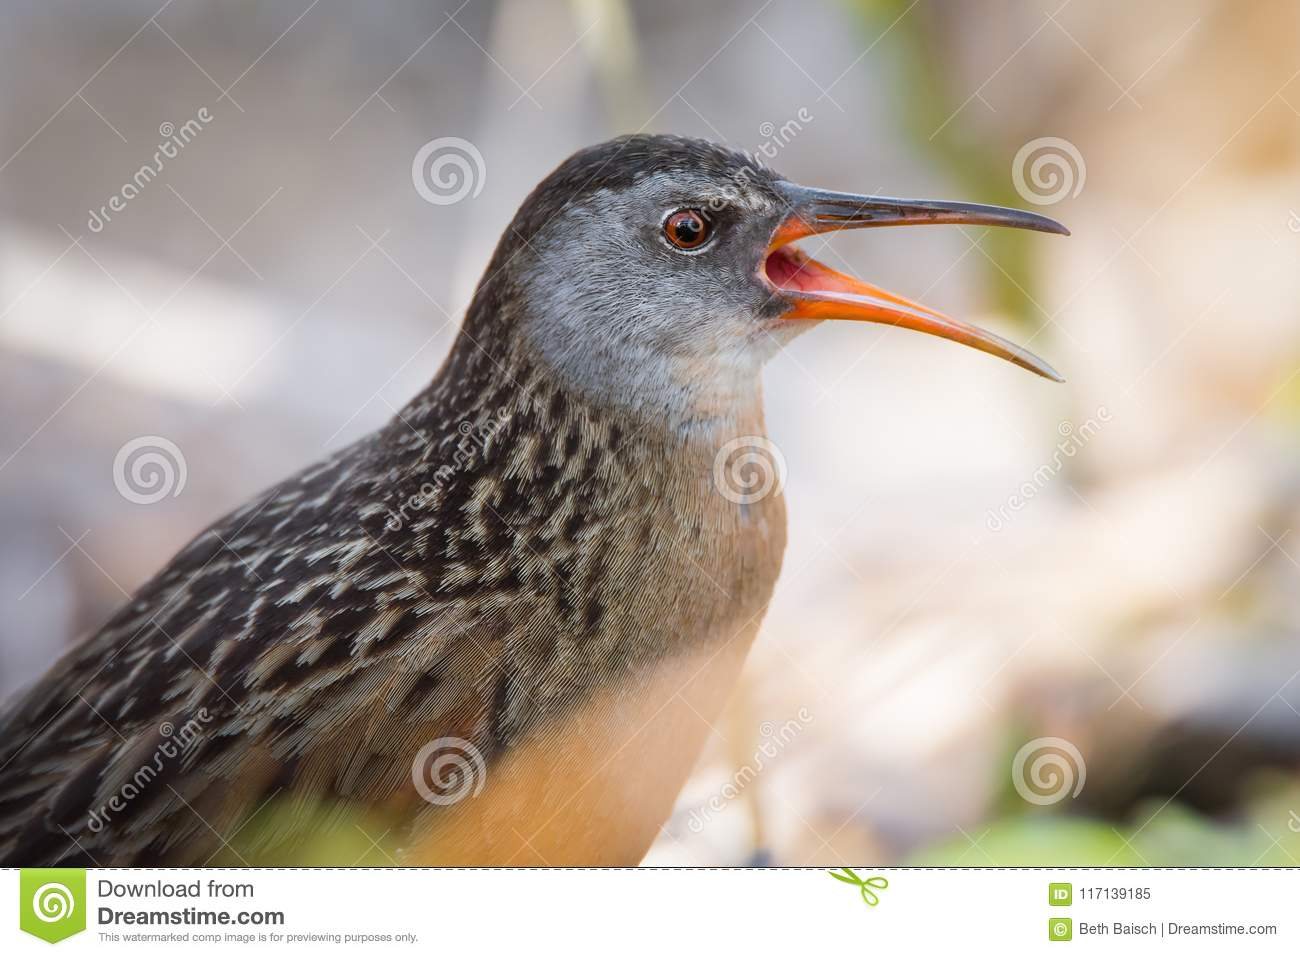 Virginia Rail Waterbird Calling To Mate Stock Image - Image of bird